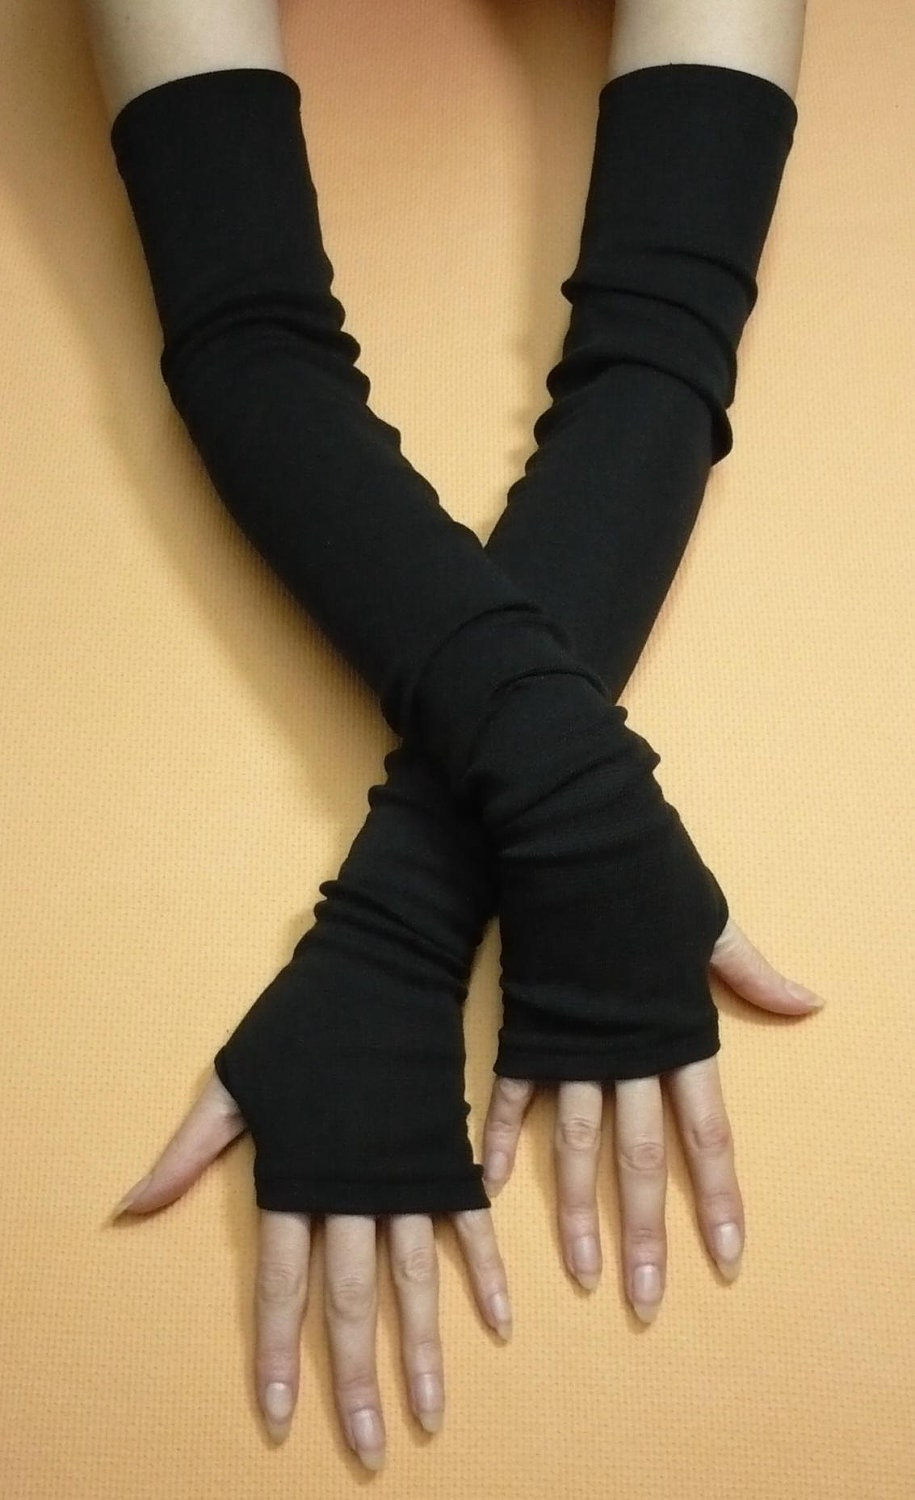 Ladies leather gloves australia - Extra Long Black Armwarmers With Thumb Holes Jersey Fingerless Gloves In Gothic And Cyber Style Tribal Wicca Dance